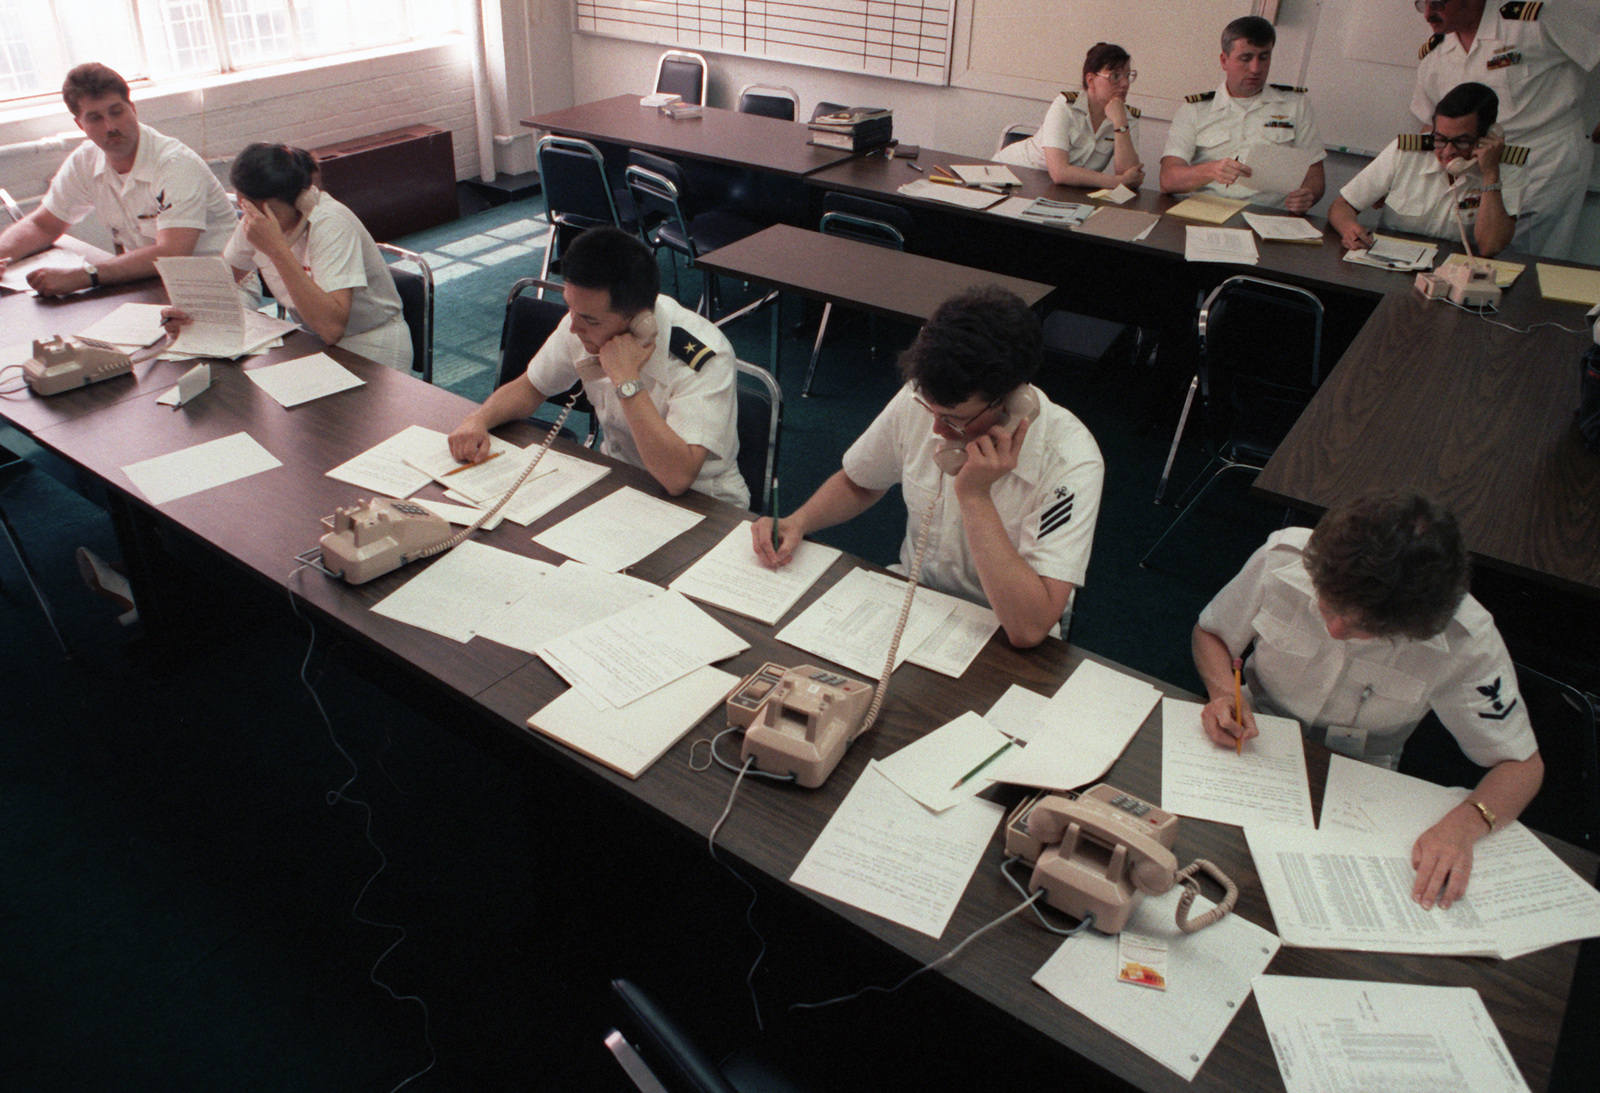 US Navy personnel take calls at the Emergency Coordination Center regarding the guided missile frigate USS STARK (FFG 31).  Thirty-seven crew members were killed aboard the STARK when it was struck by two Irqi-launched Exocet missiles in the Persian Gulf on May 17, 1987